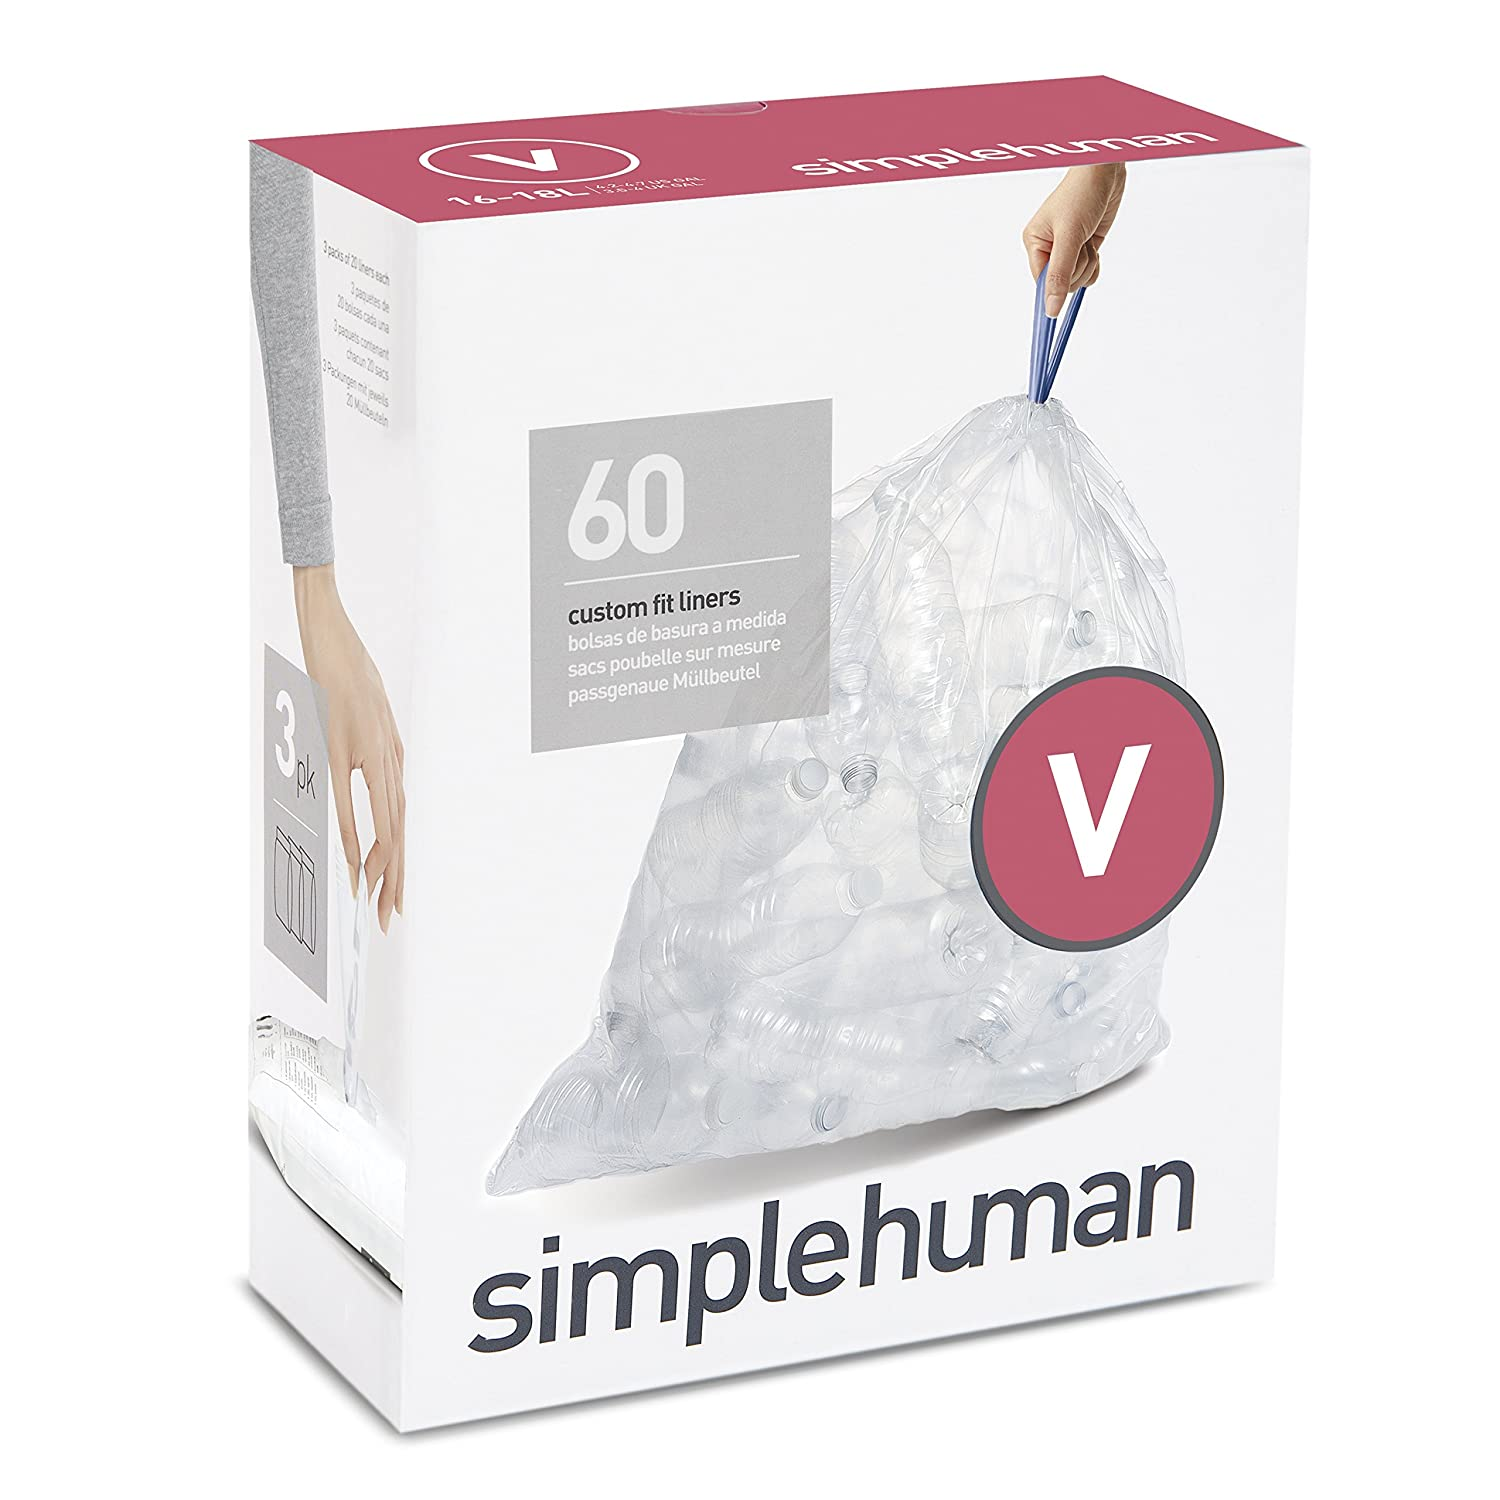 simplehuman Code V Custom Fit Recycling Trash Can Liner, 3 Refill Packs (60 Count), 16-18 L/4.2-4.8 Gal Bag, Clear CW0277